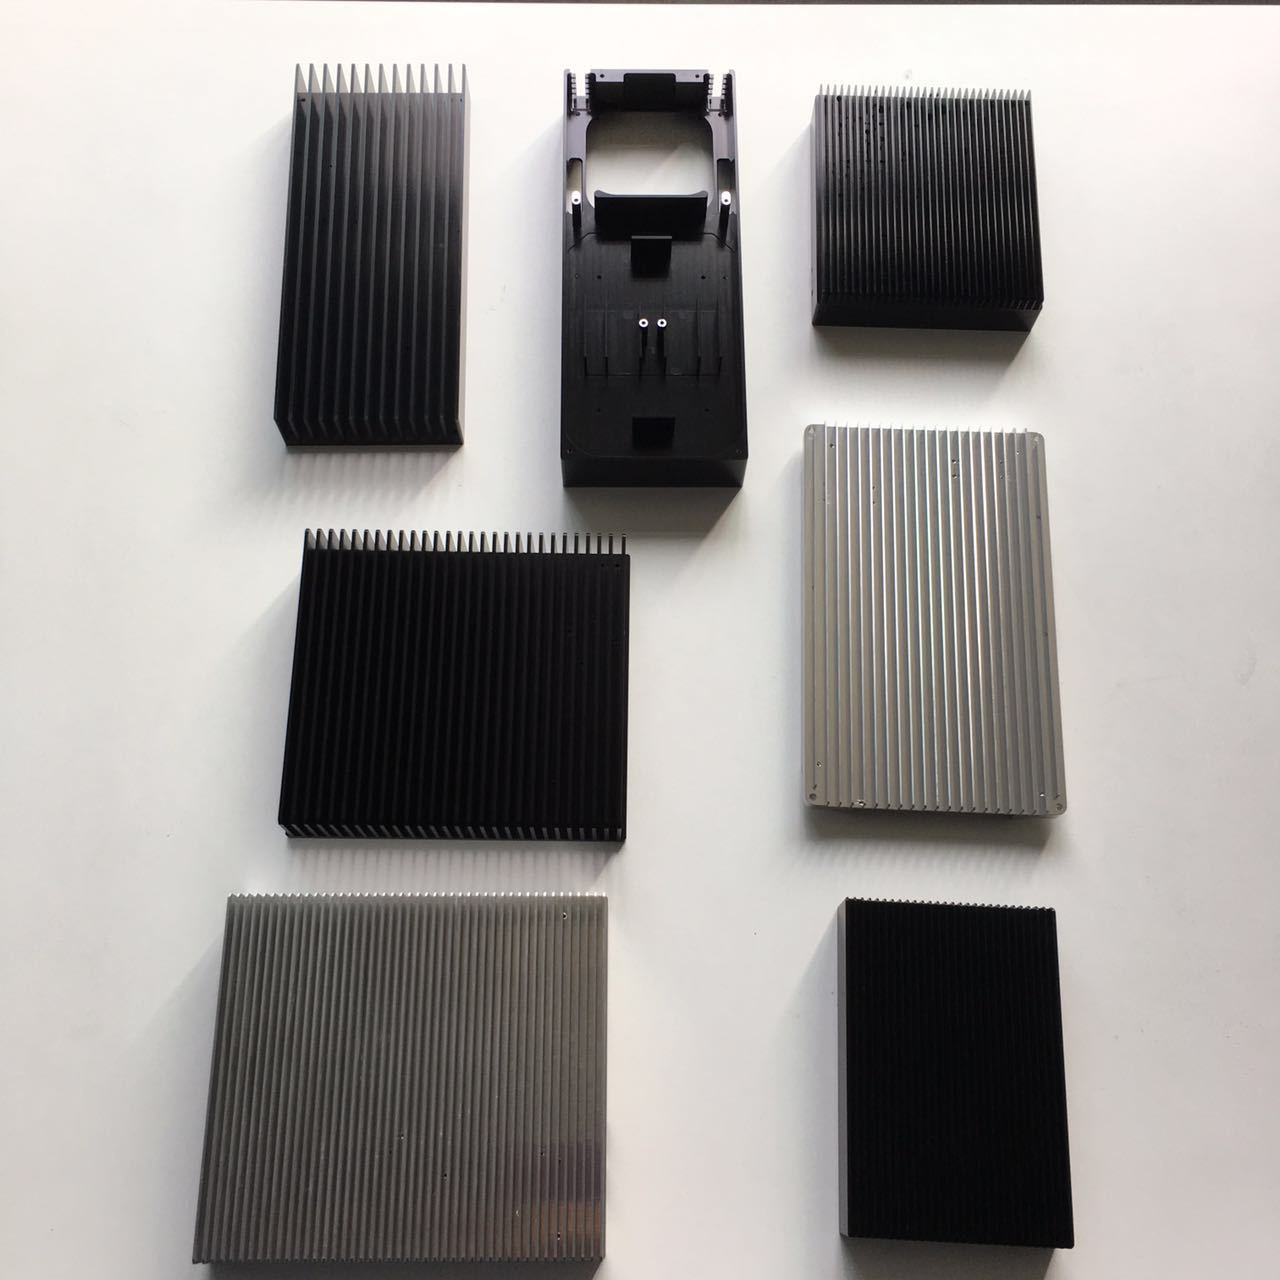 CNC machined Heat Sink Aluminum Housing